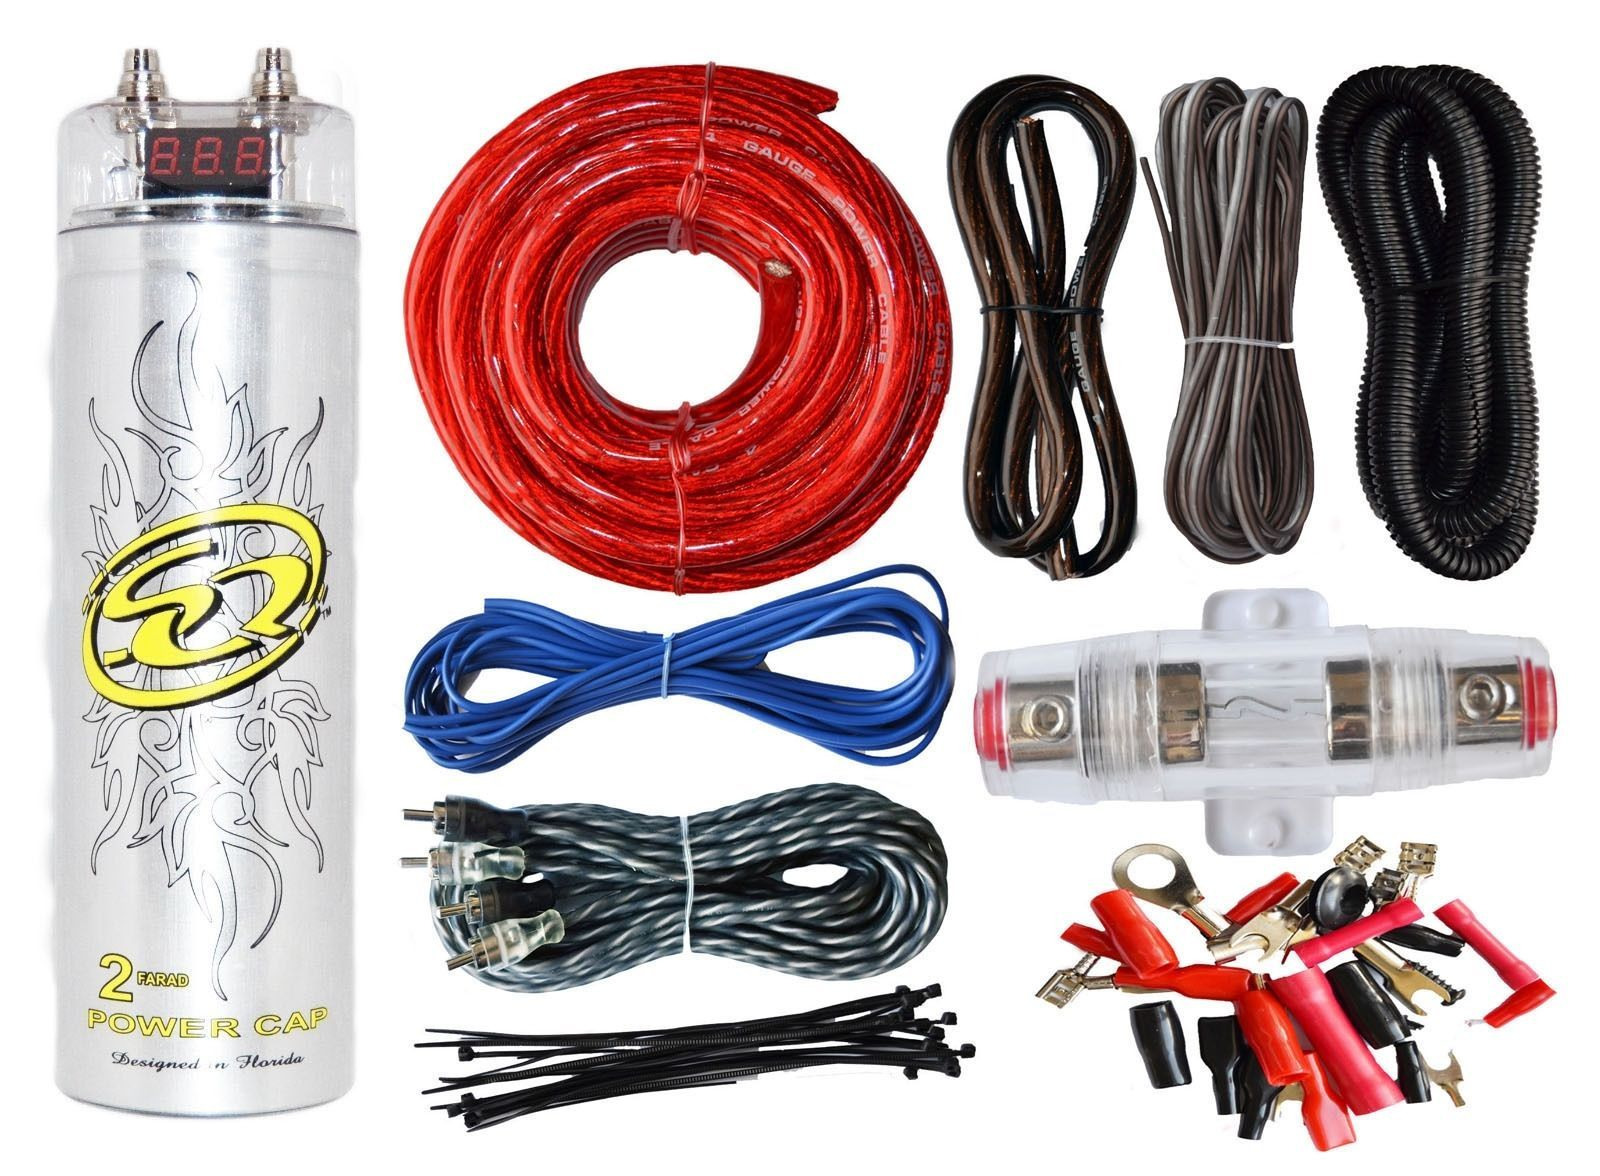 4 Gauge Amp Kit Amplifier Install Wiring 25 Farad Digital Installation Power Ofc Ebay 2 Capacitor 2300w Peak Kits Electronics Accessories Cables